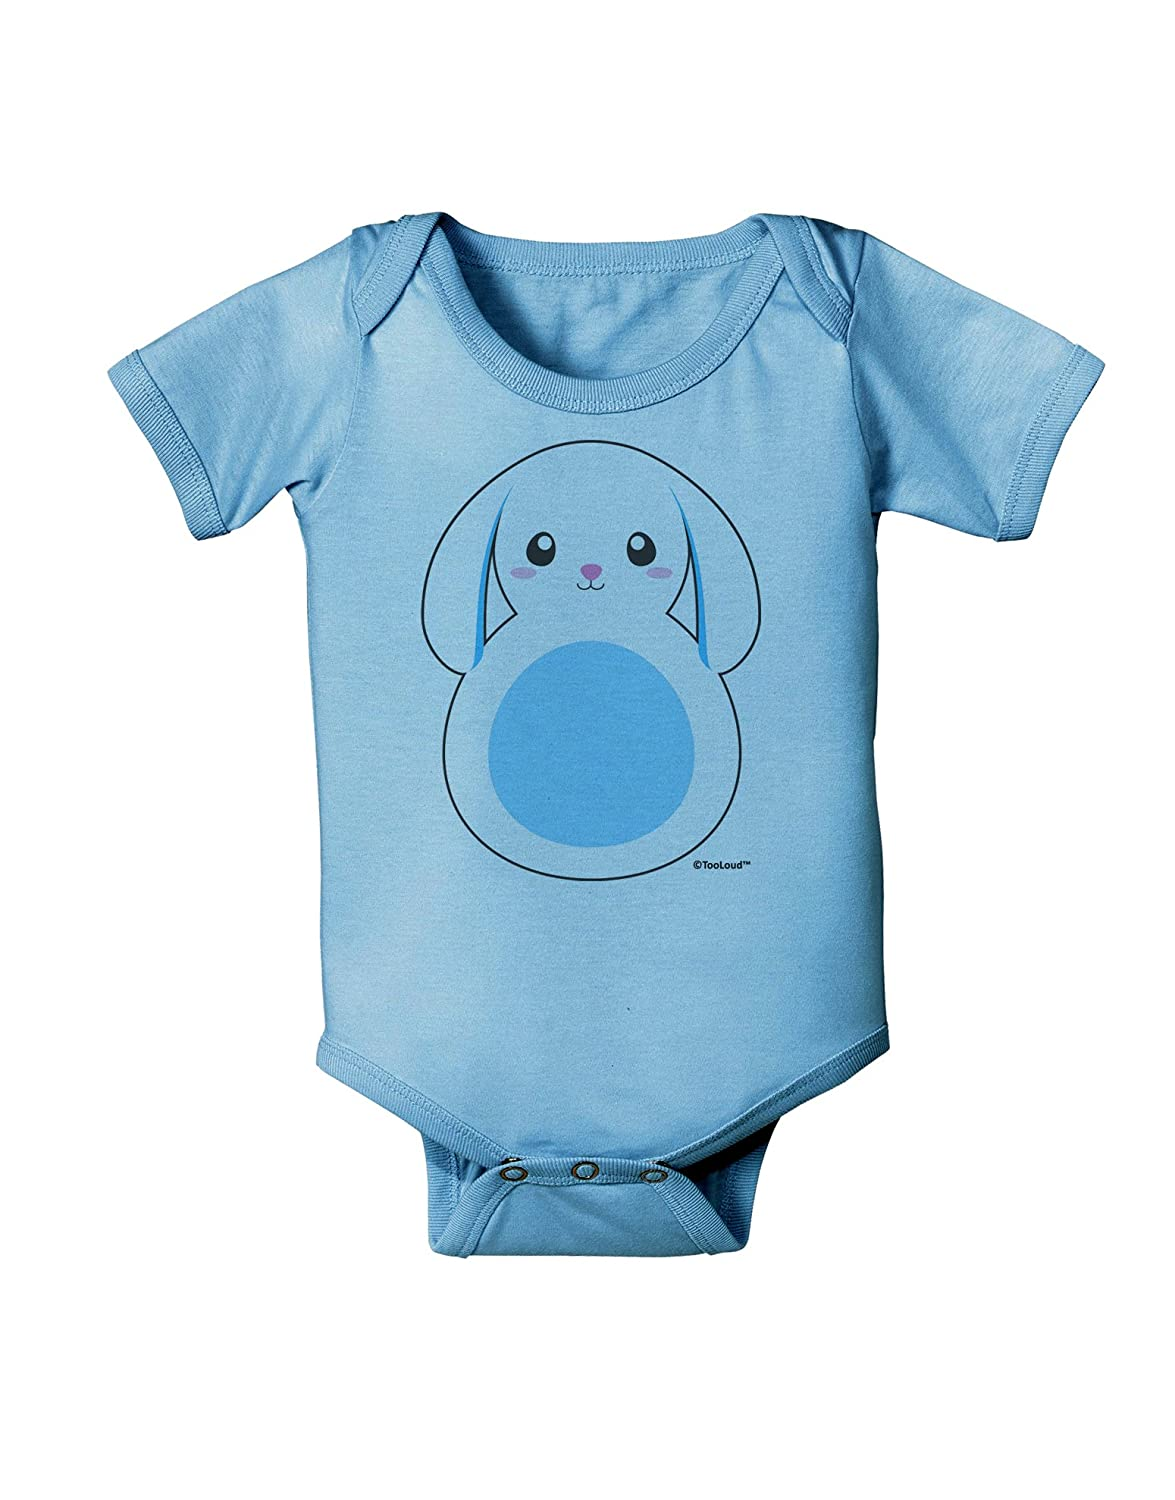 Blue Baby Romper Bodysuit TooLoud Cute Bunny with Floppy Ears